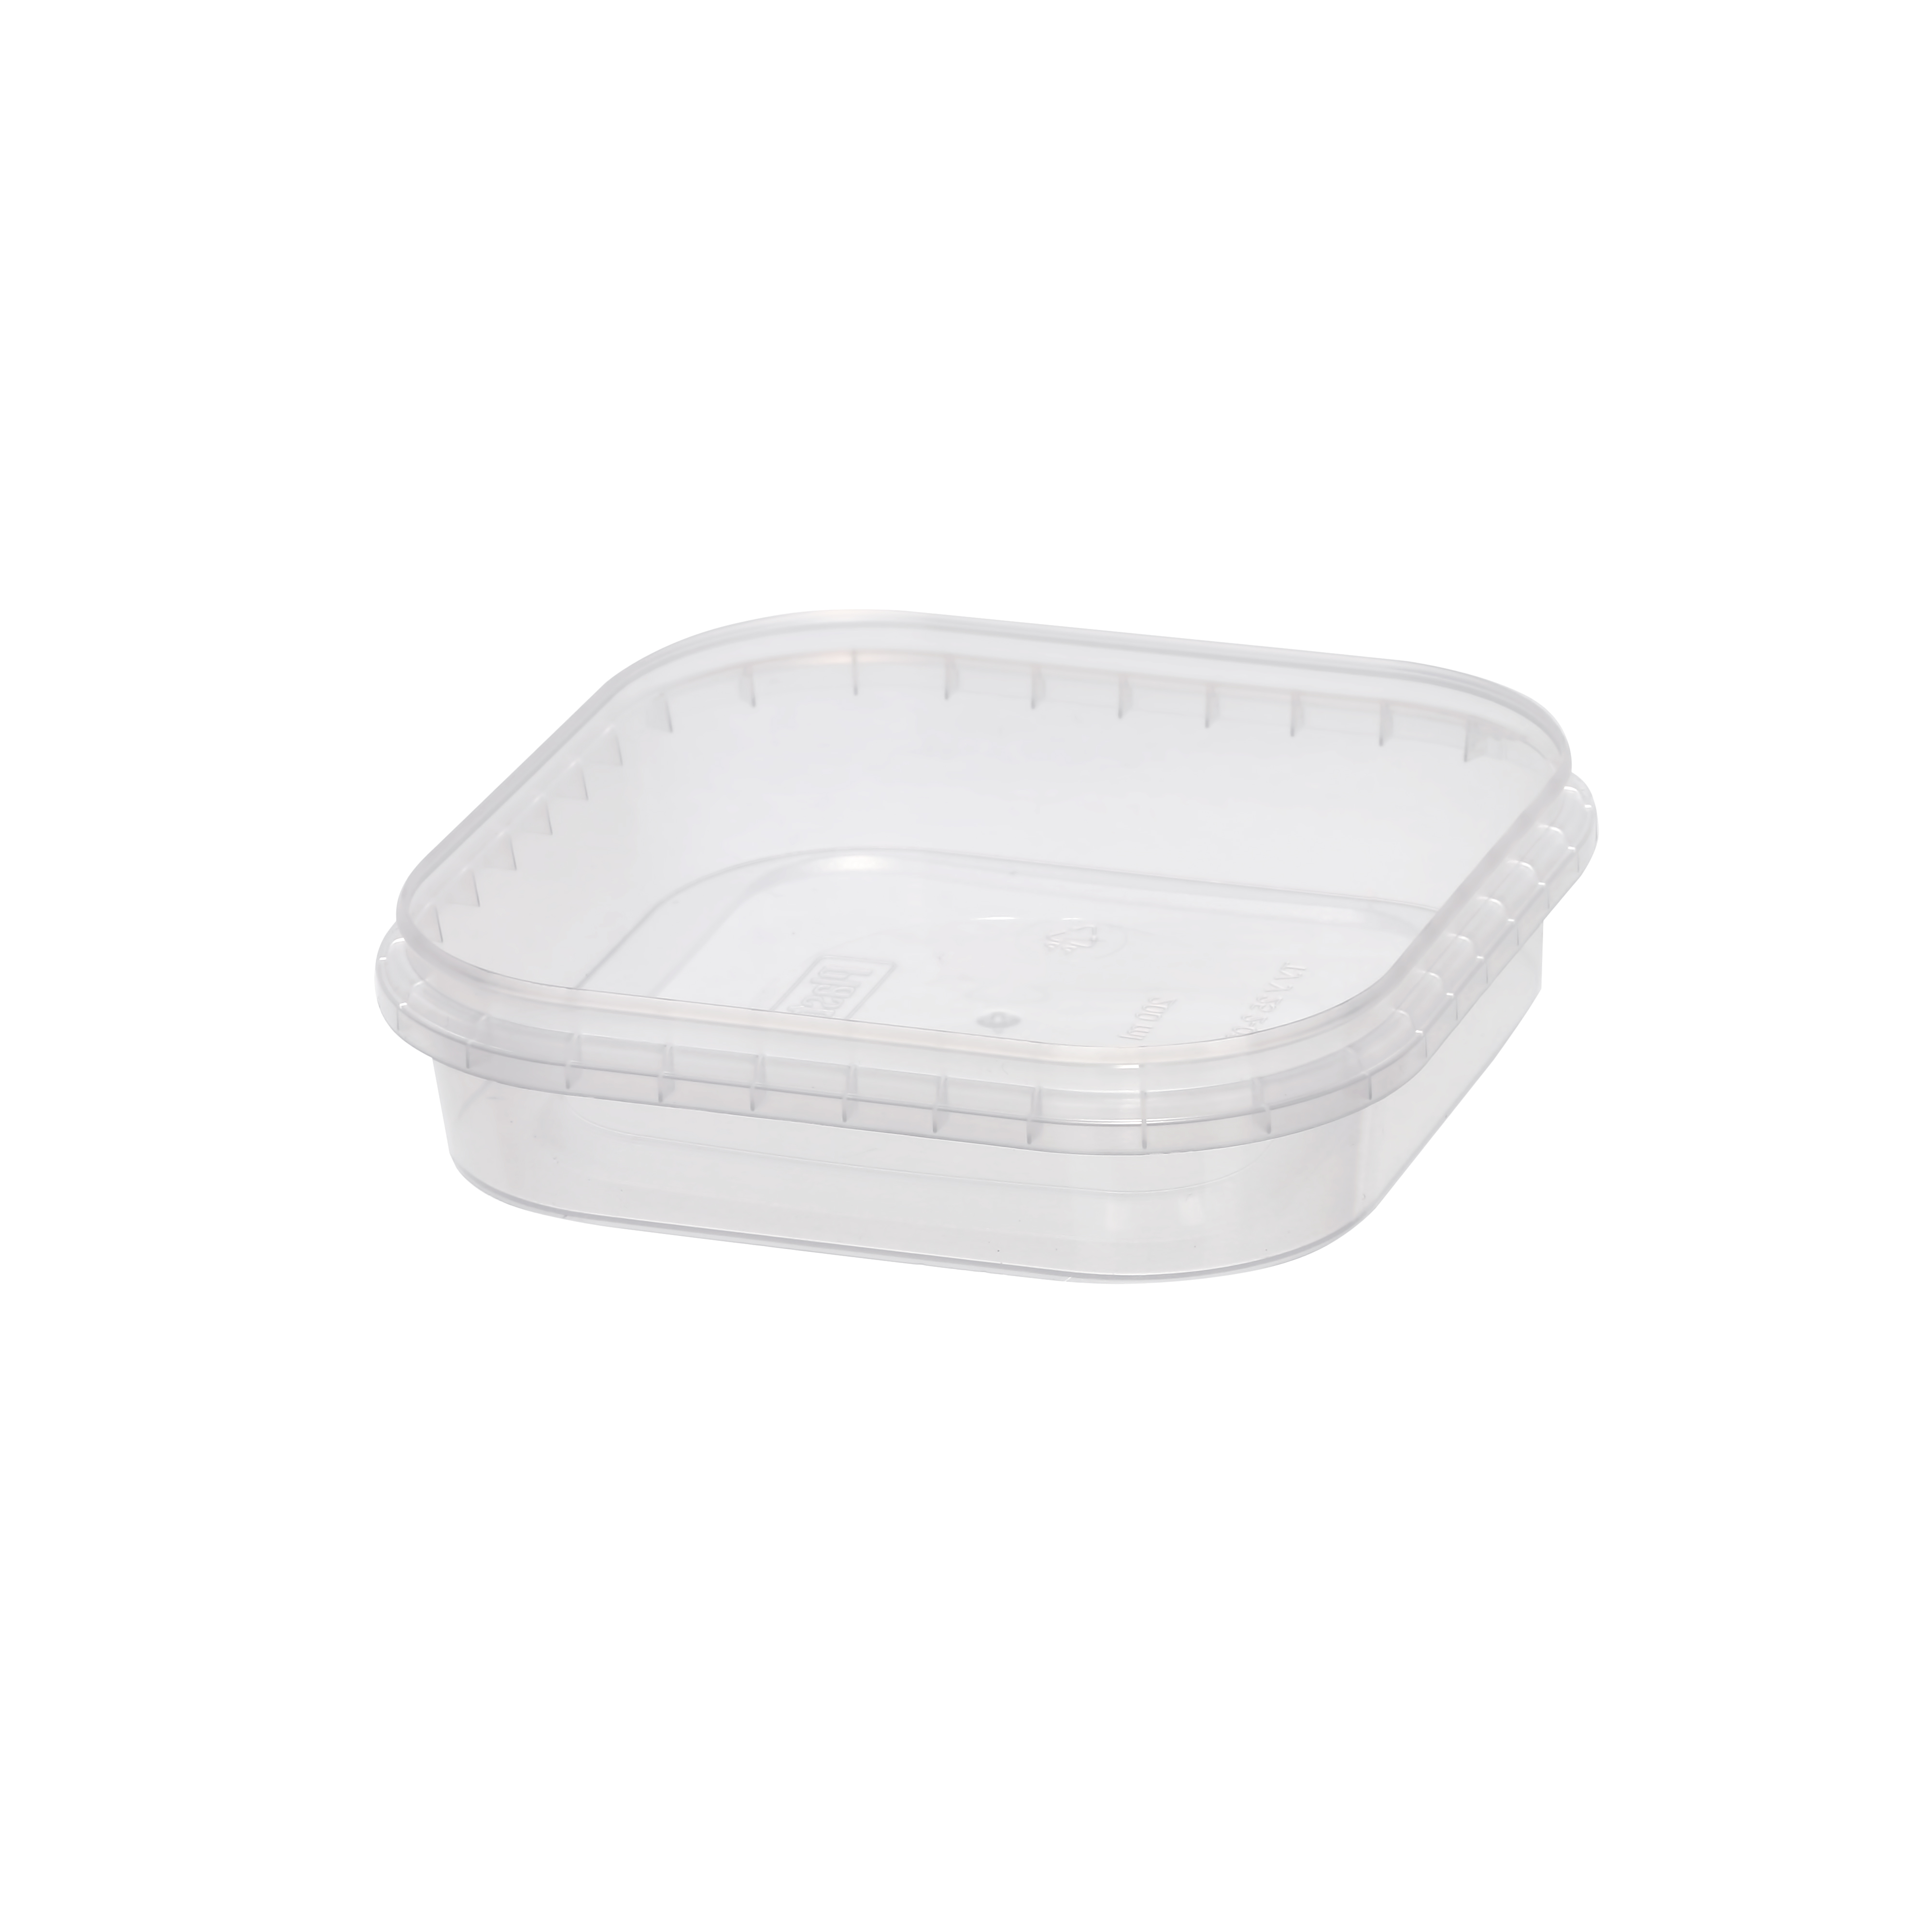 Polymeric (PP) food containers 200 ml. Polypropylene food container with tamper evident control